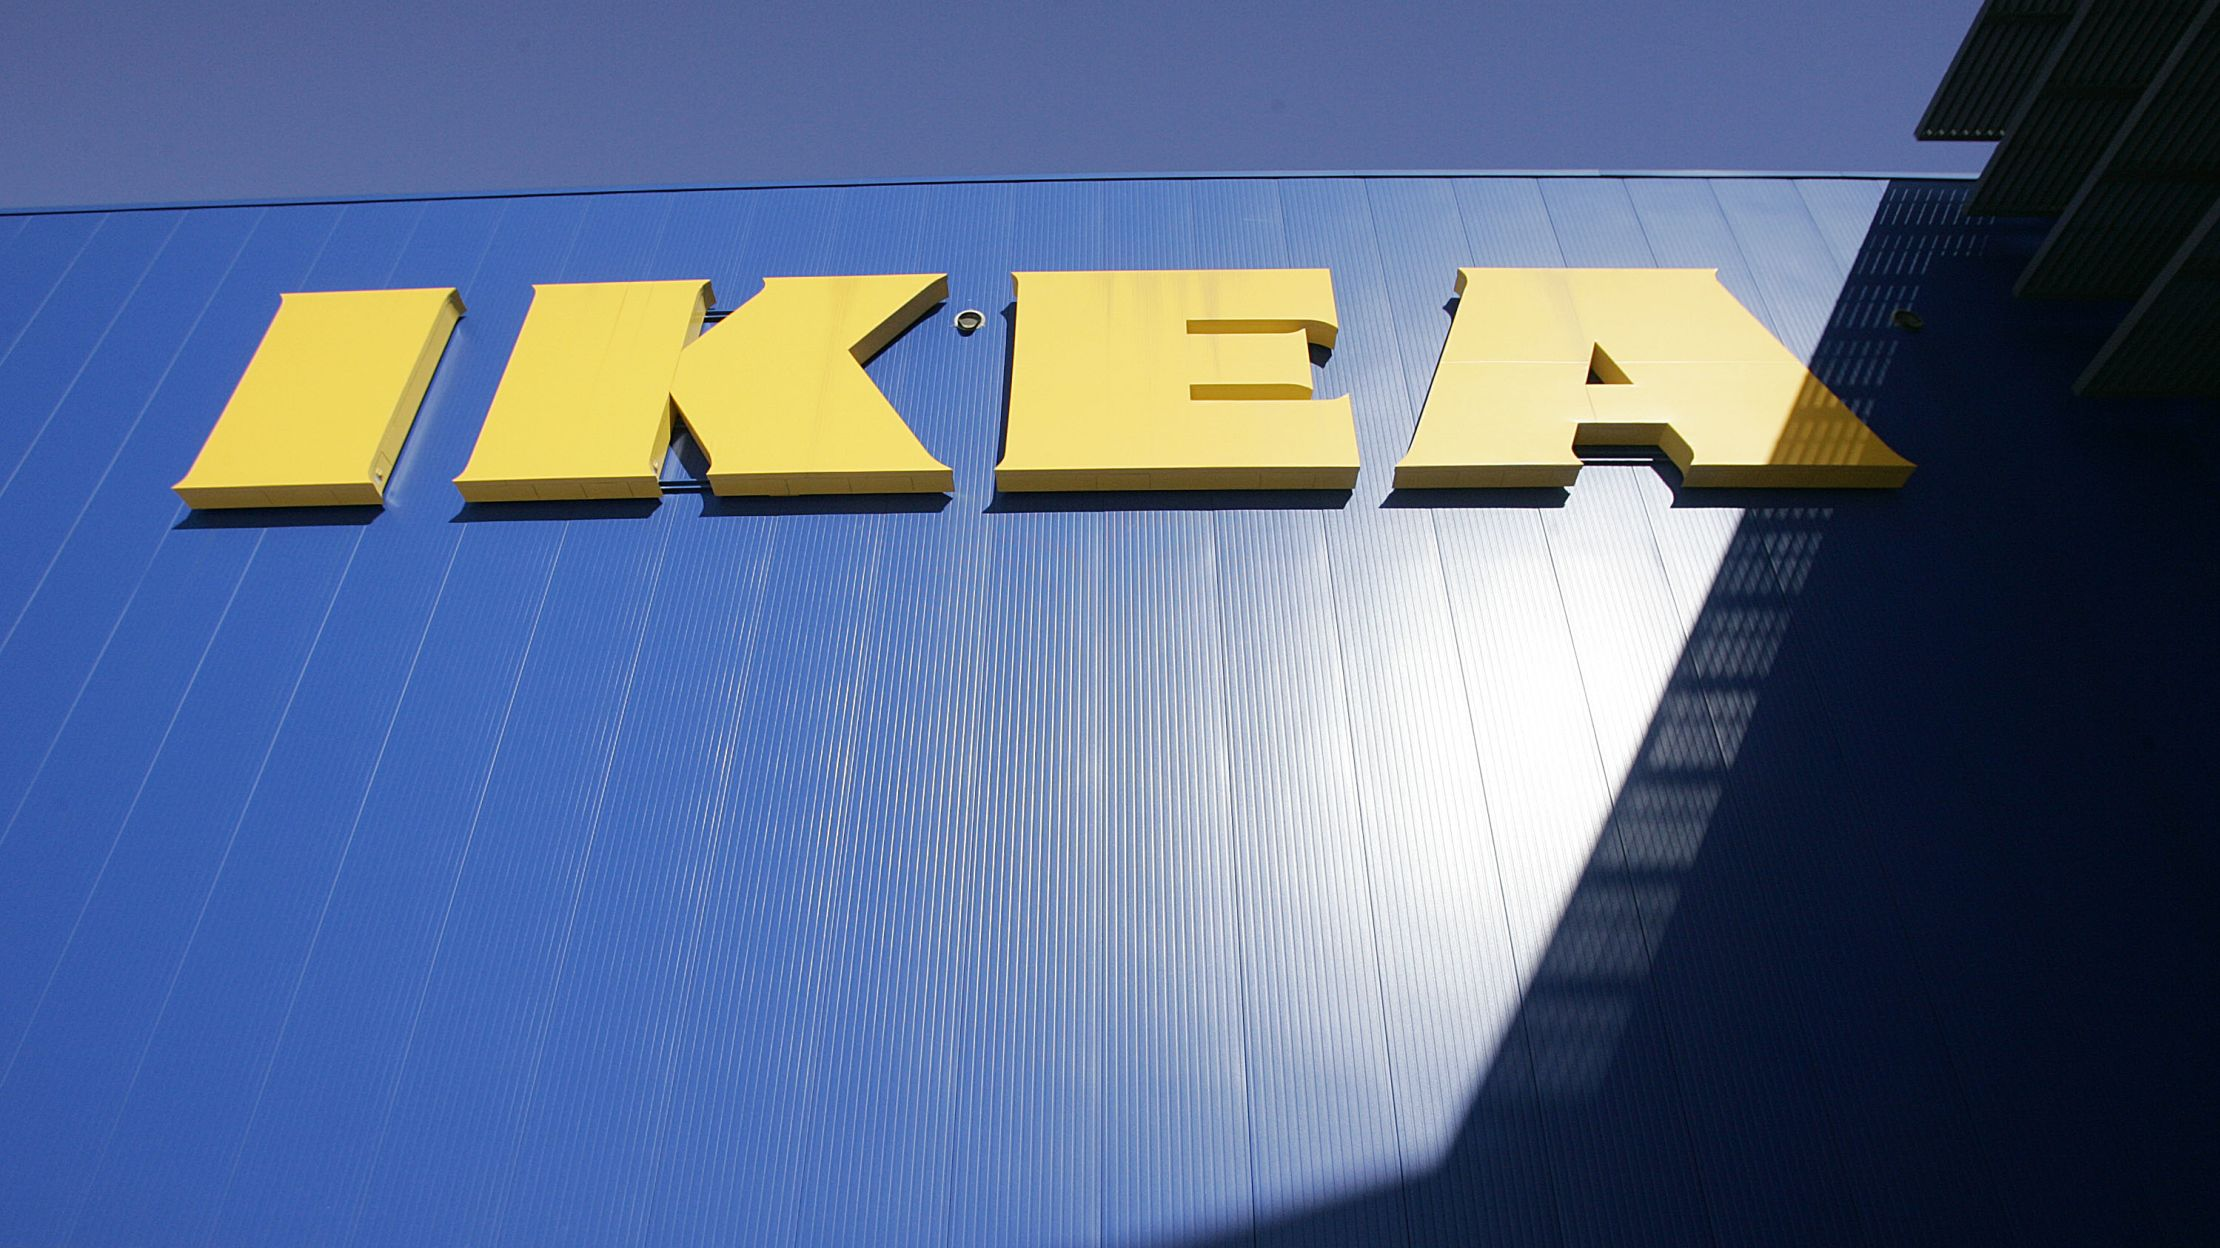 19 Behind The Scenes Secrets Of Ikea Employees Mental Floss,Color Code Personality Test Blue